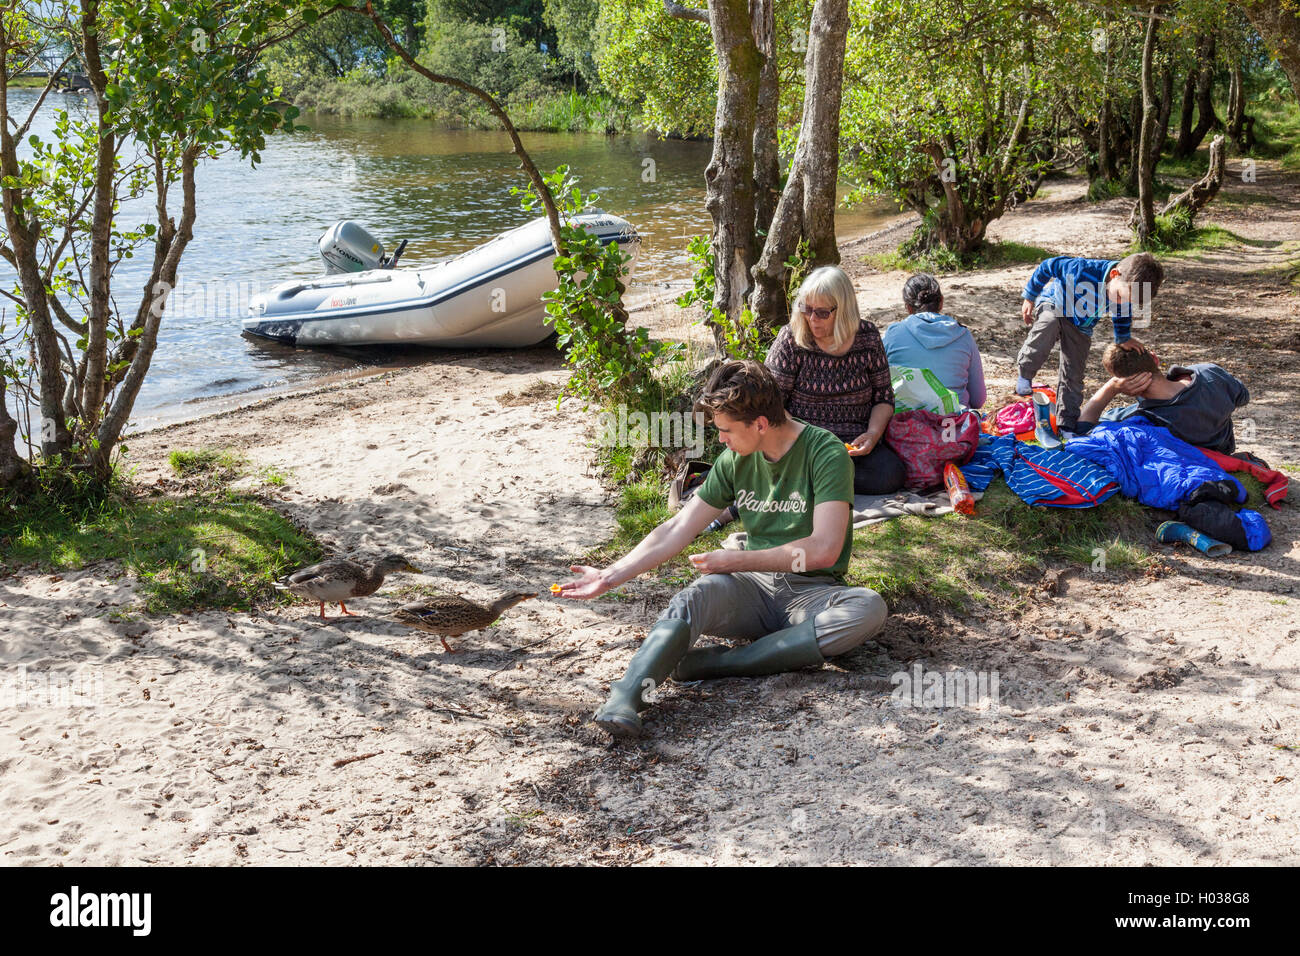 A family boating party picnicking on the island of Inchcailloch in Loch Lomond, Argyll & Bute, Scotland UK - Stock Image